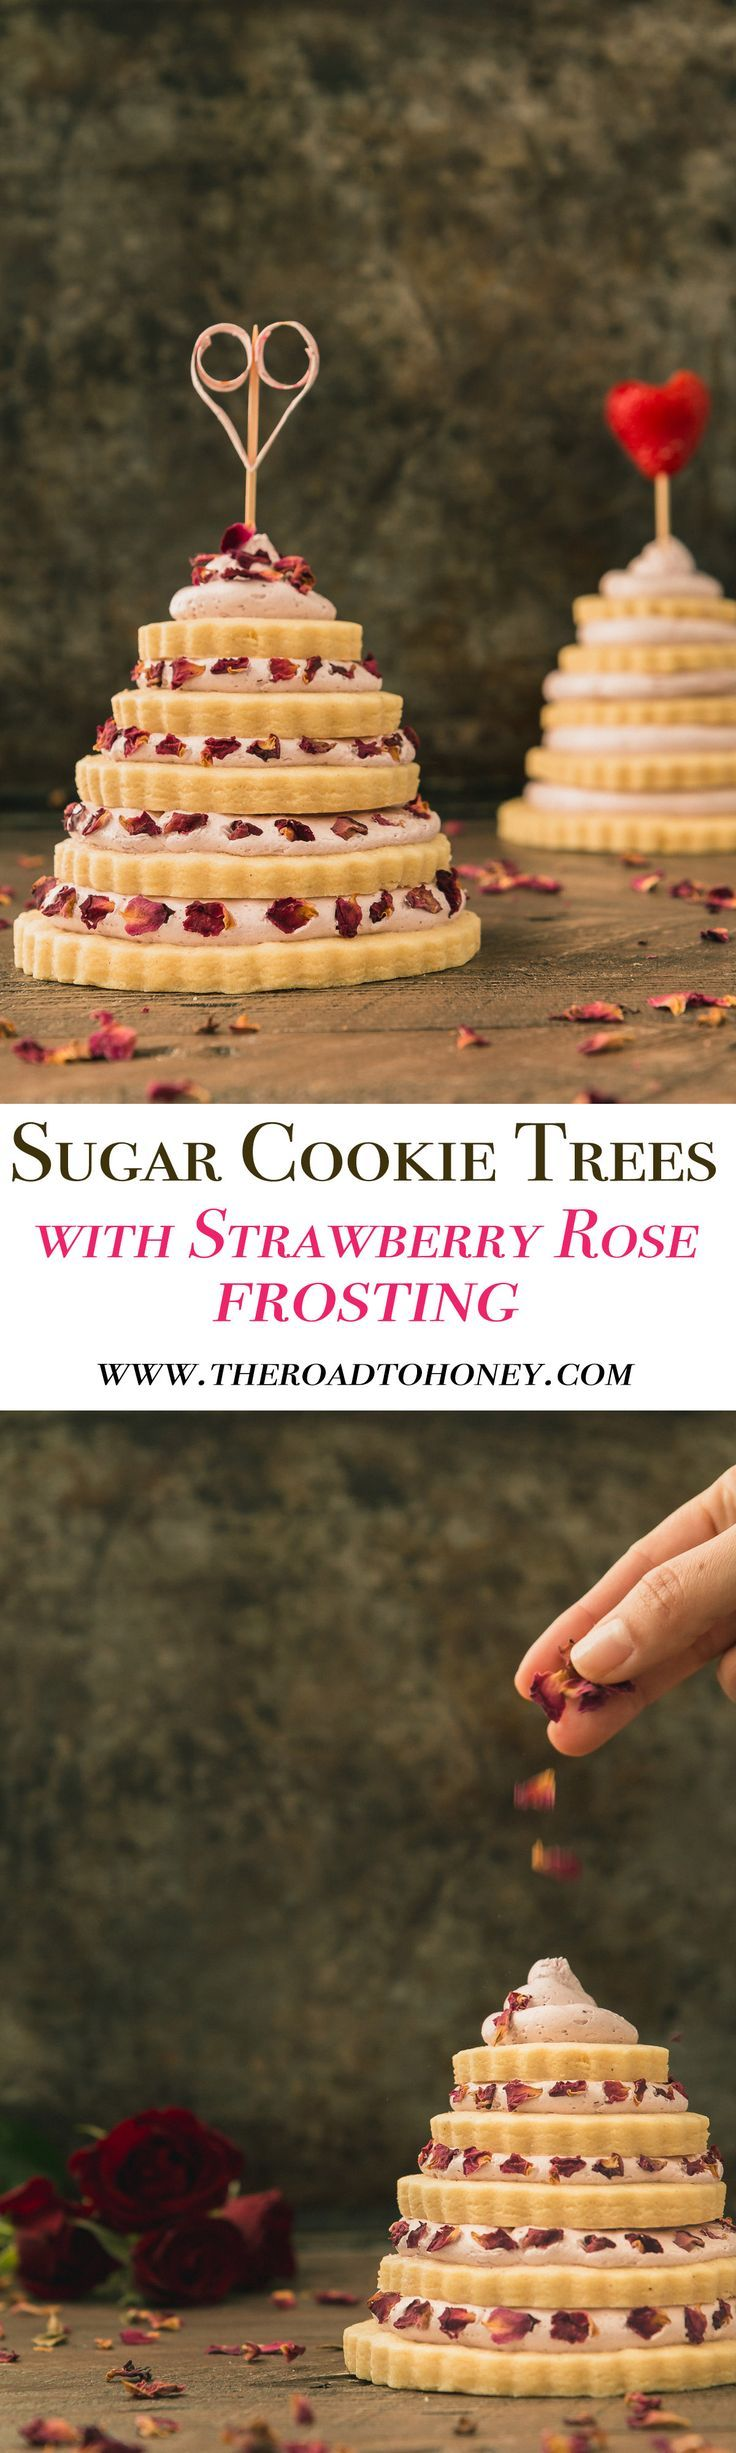 Sugar Cookie Trees with Strawberry Rose Frosting - are made of tiers of sweet almond sugar cookies & topped with a dreamy strawberry & rose buttercream frosting. Perfect for Valentines Day or any other special occasion. Click for RECIPE.